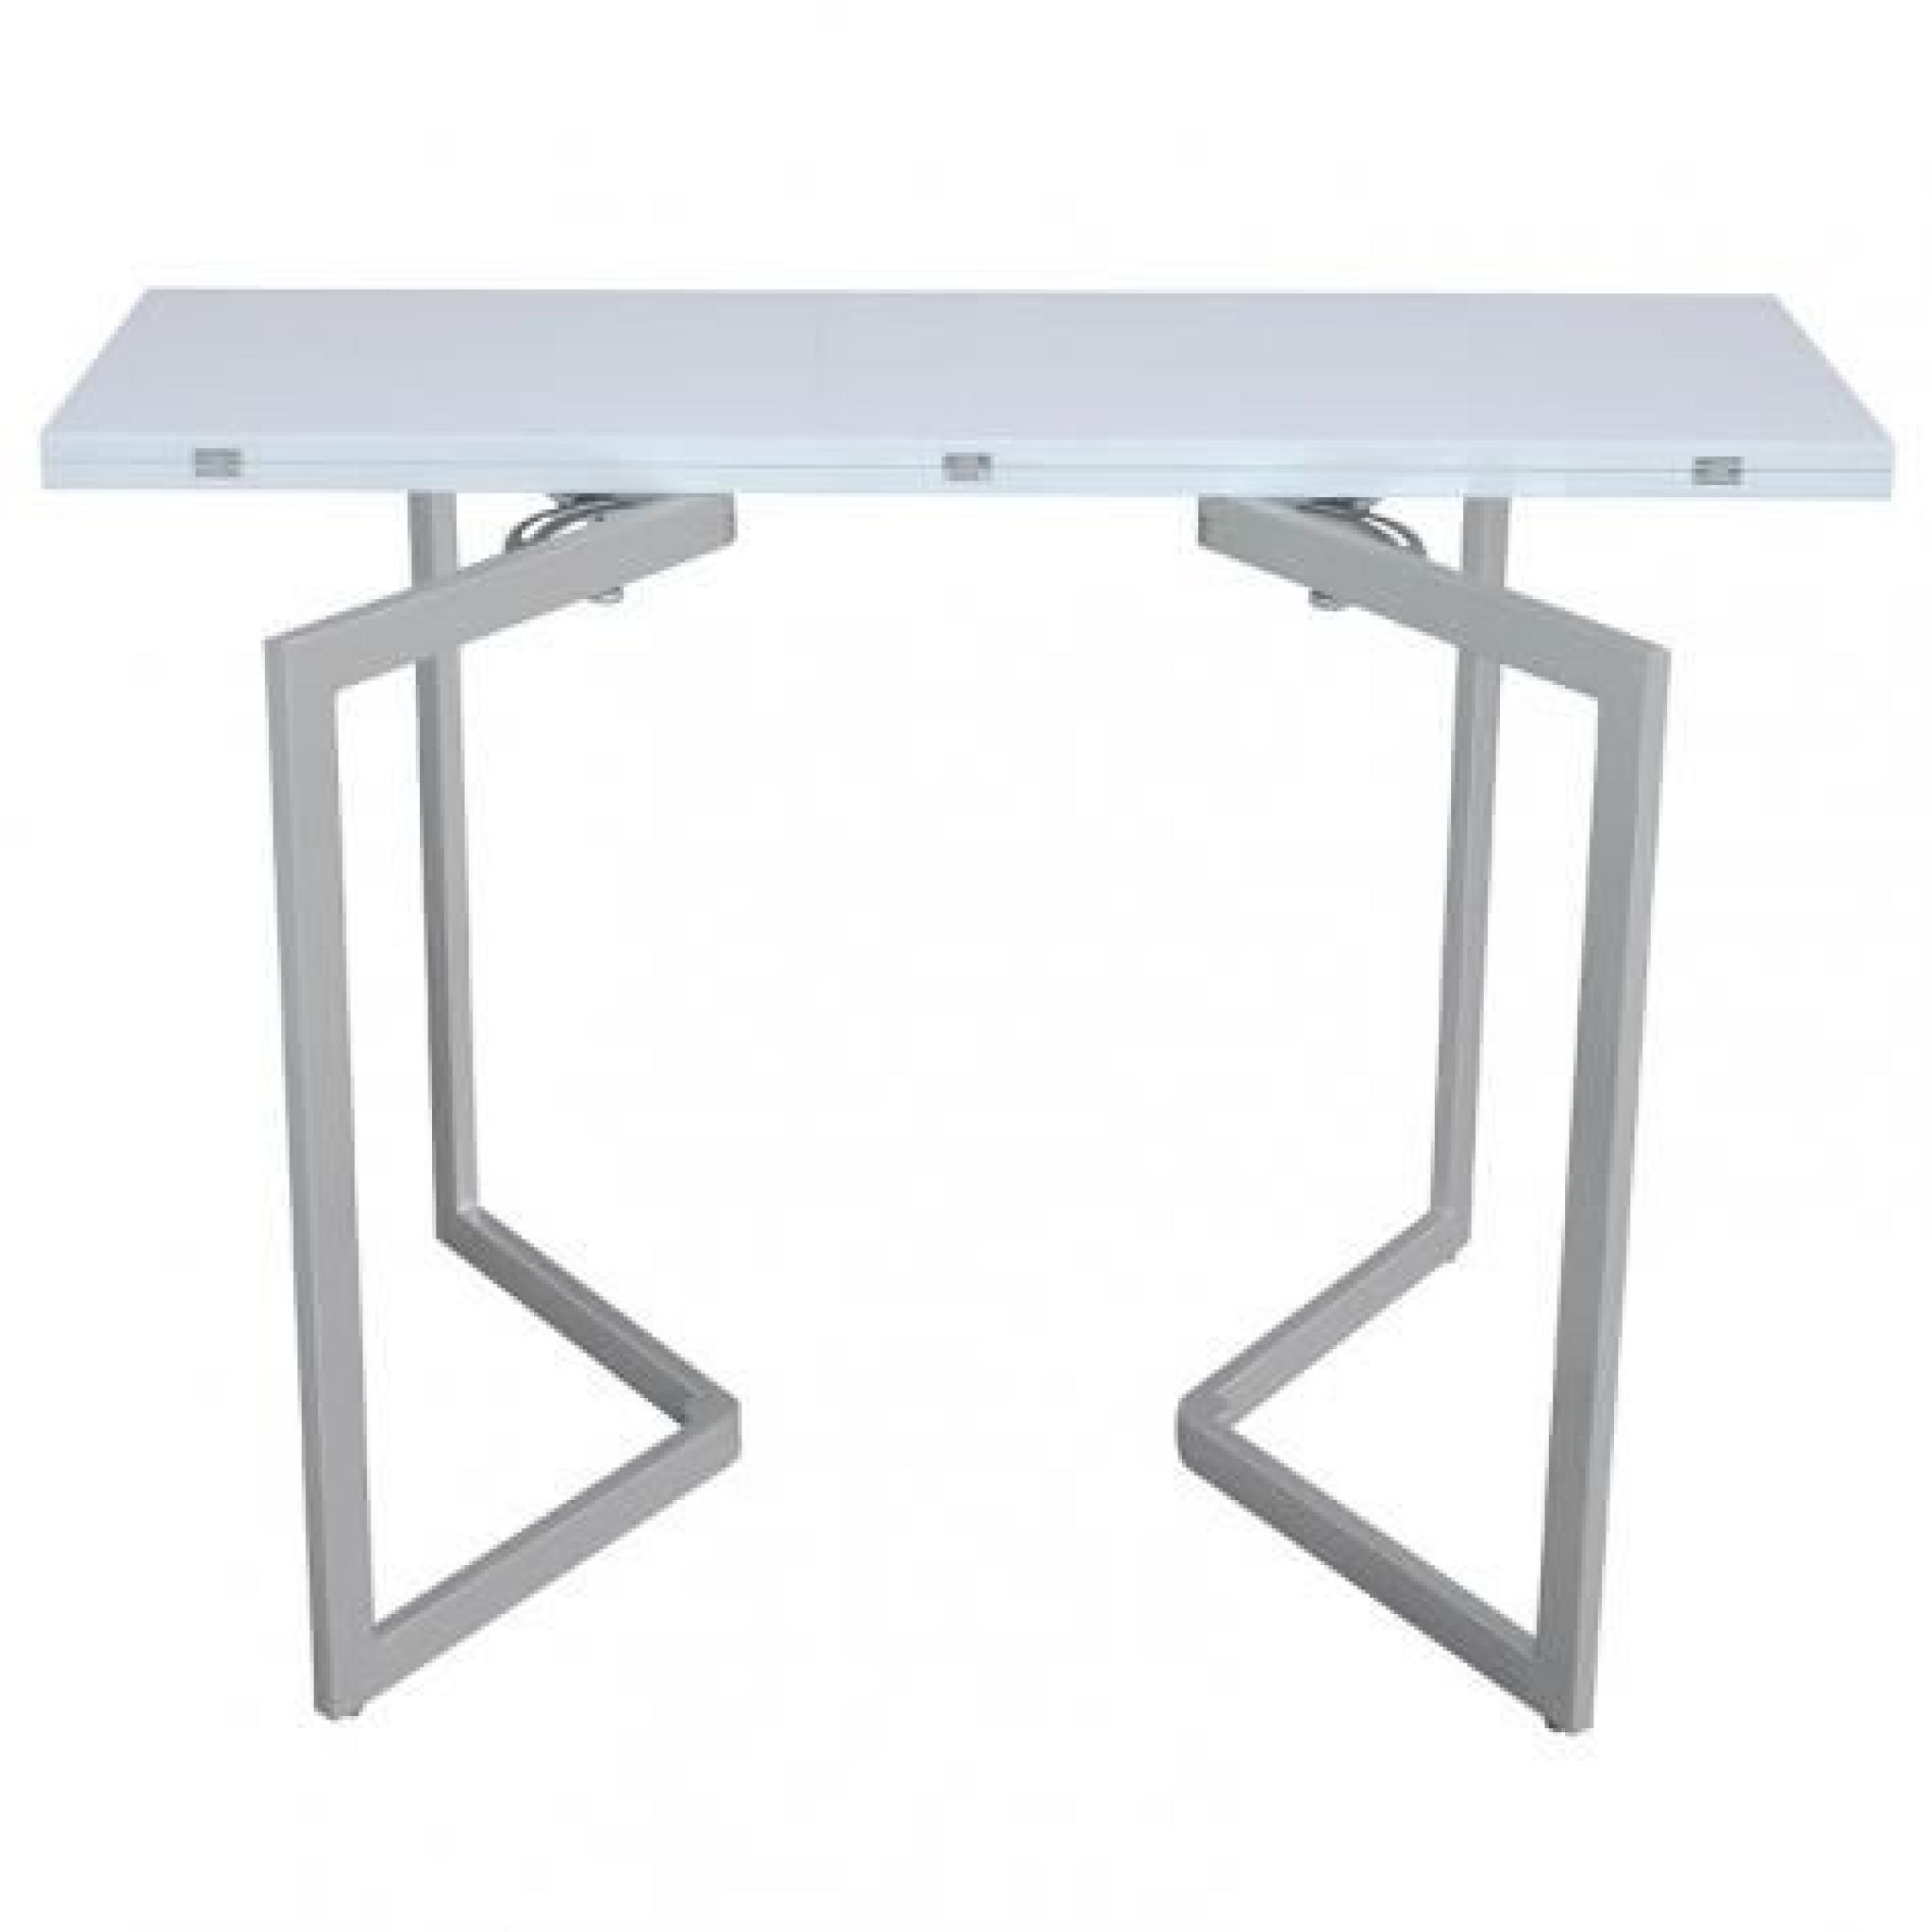 Table console extensible blanche laqu e talia achat for Table laquee extensible